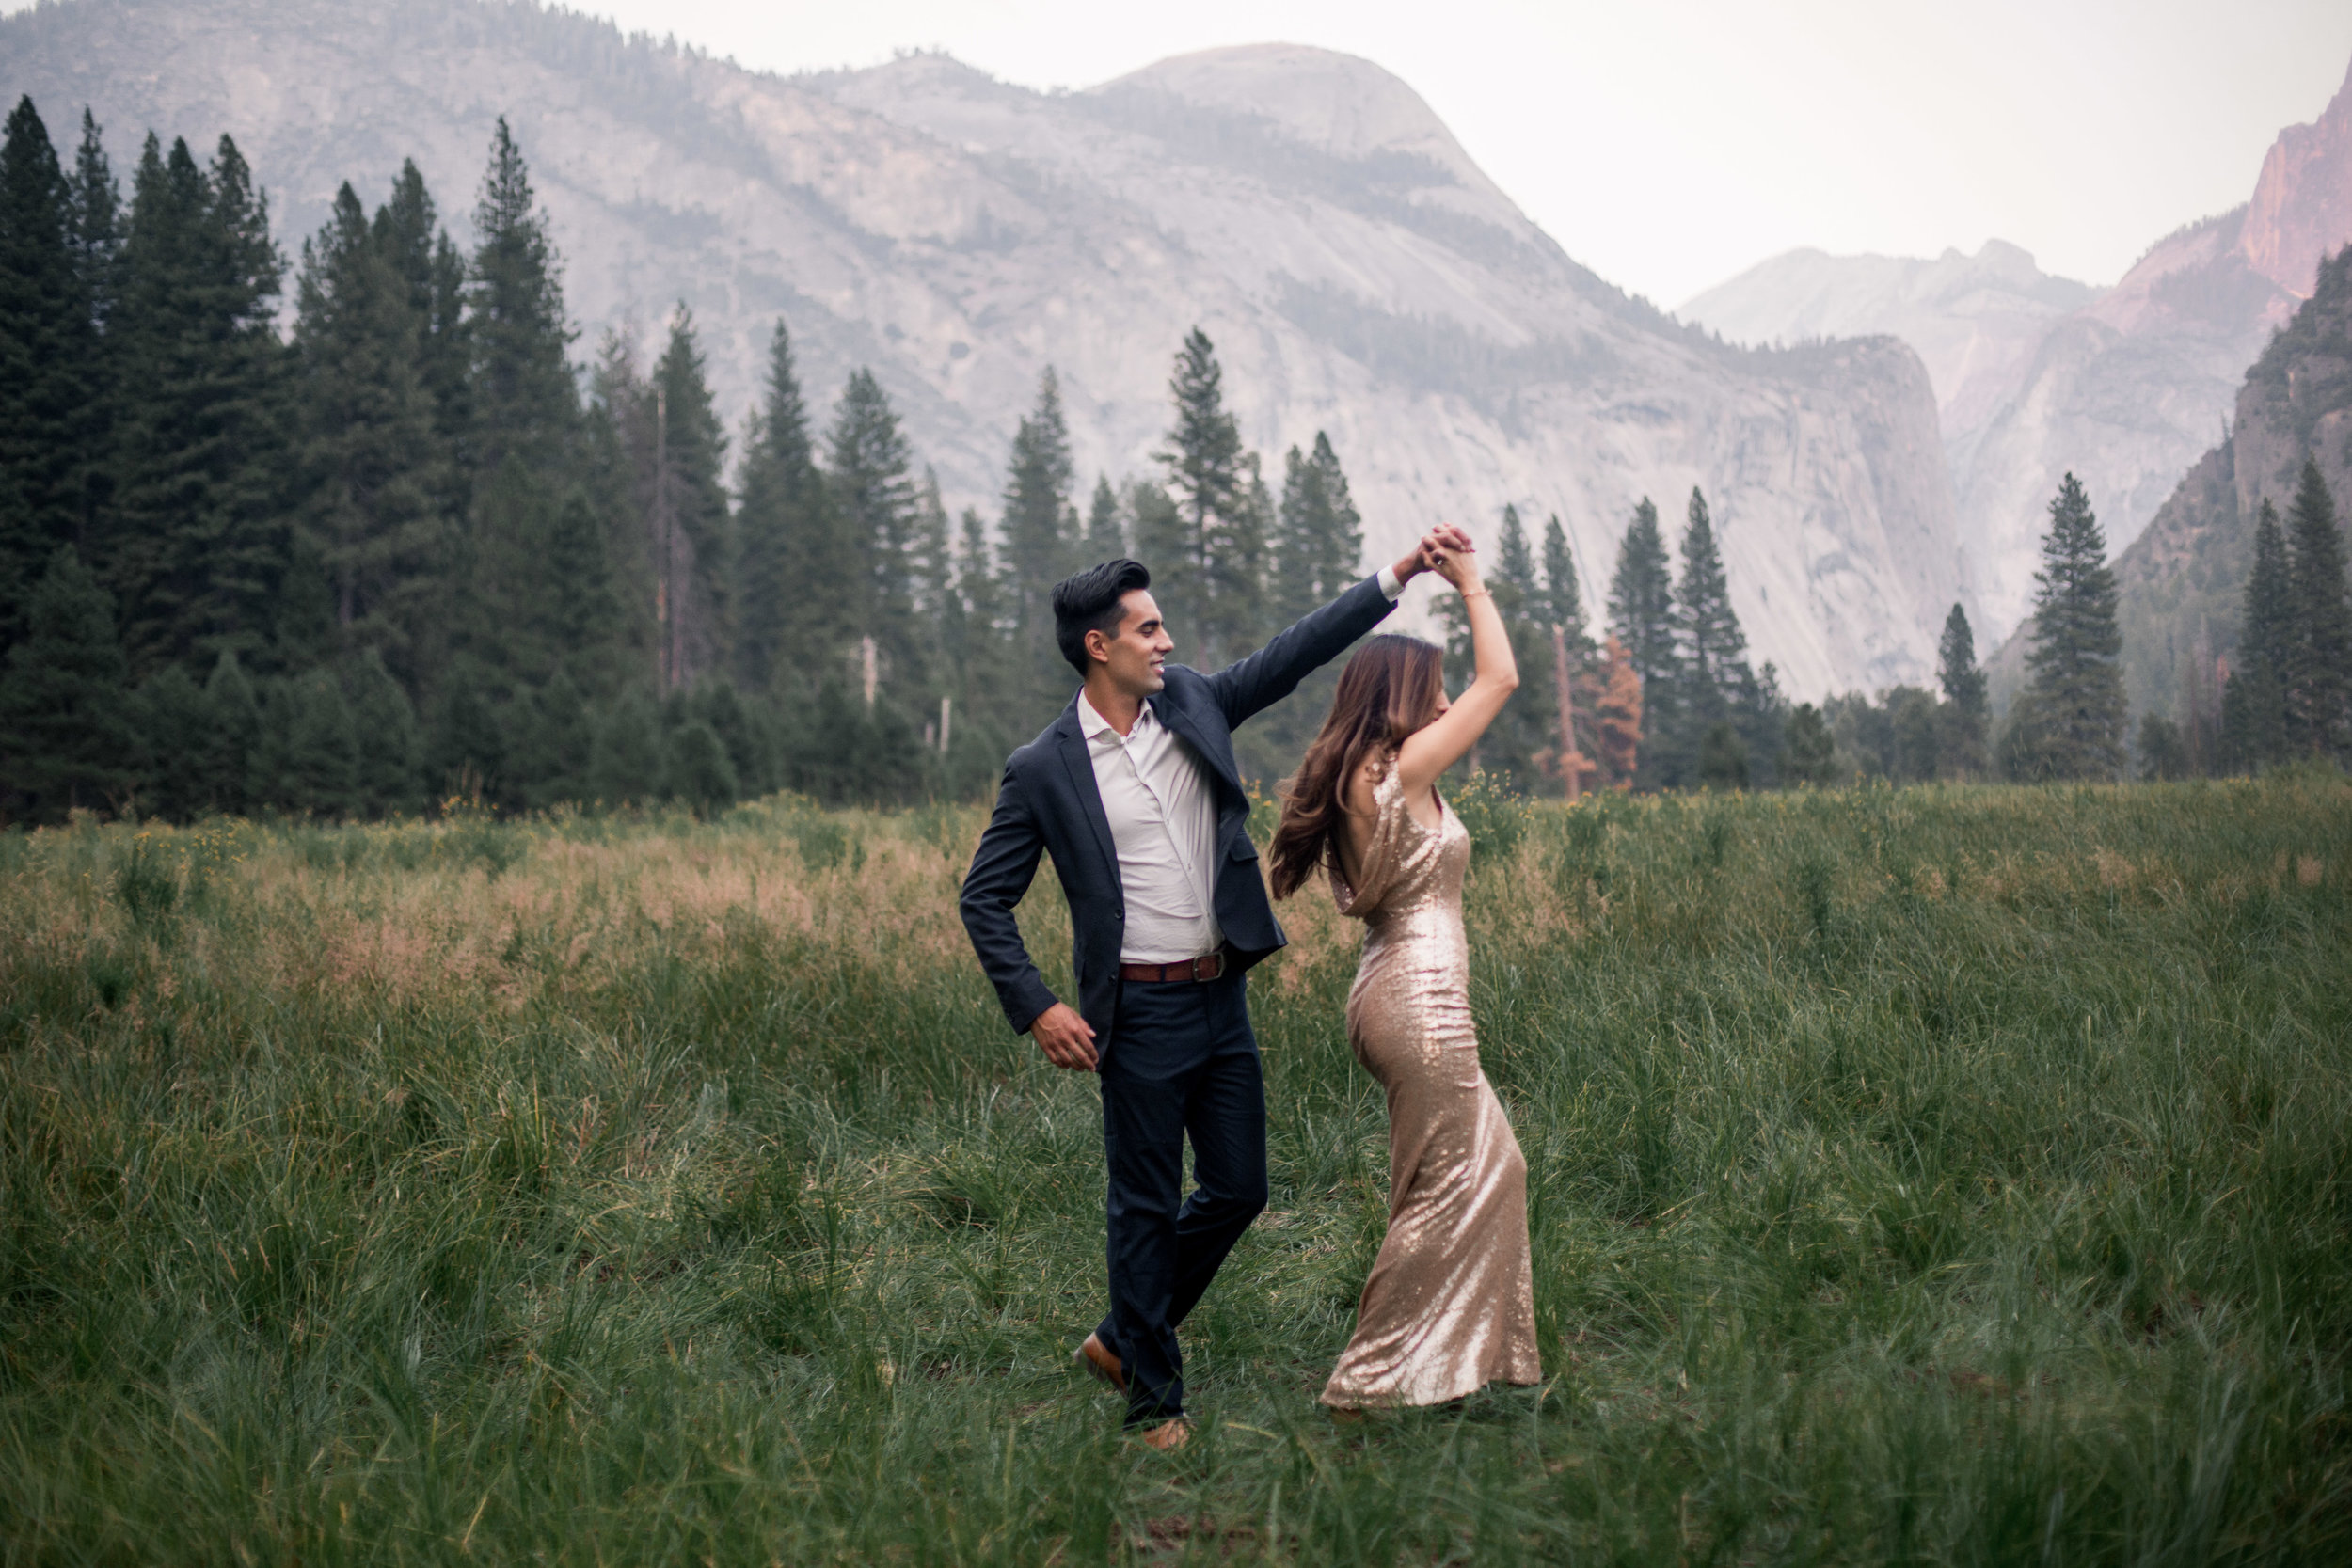 nicole-daacke-photography-yosemite-national-park-adventurous-engagement-session-half-dome-engagement-session-anniversary-photographer-yosemite-elopement-photographer-yosemite-intimate-wedding-photography-35.jpg